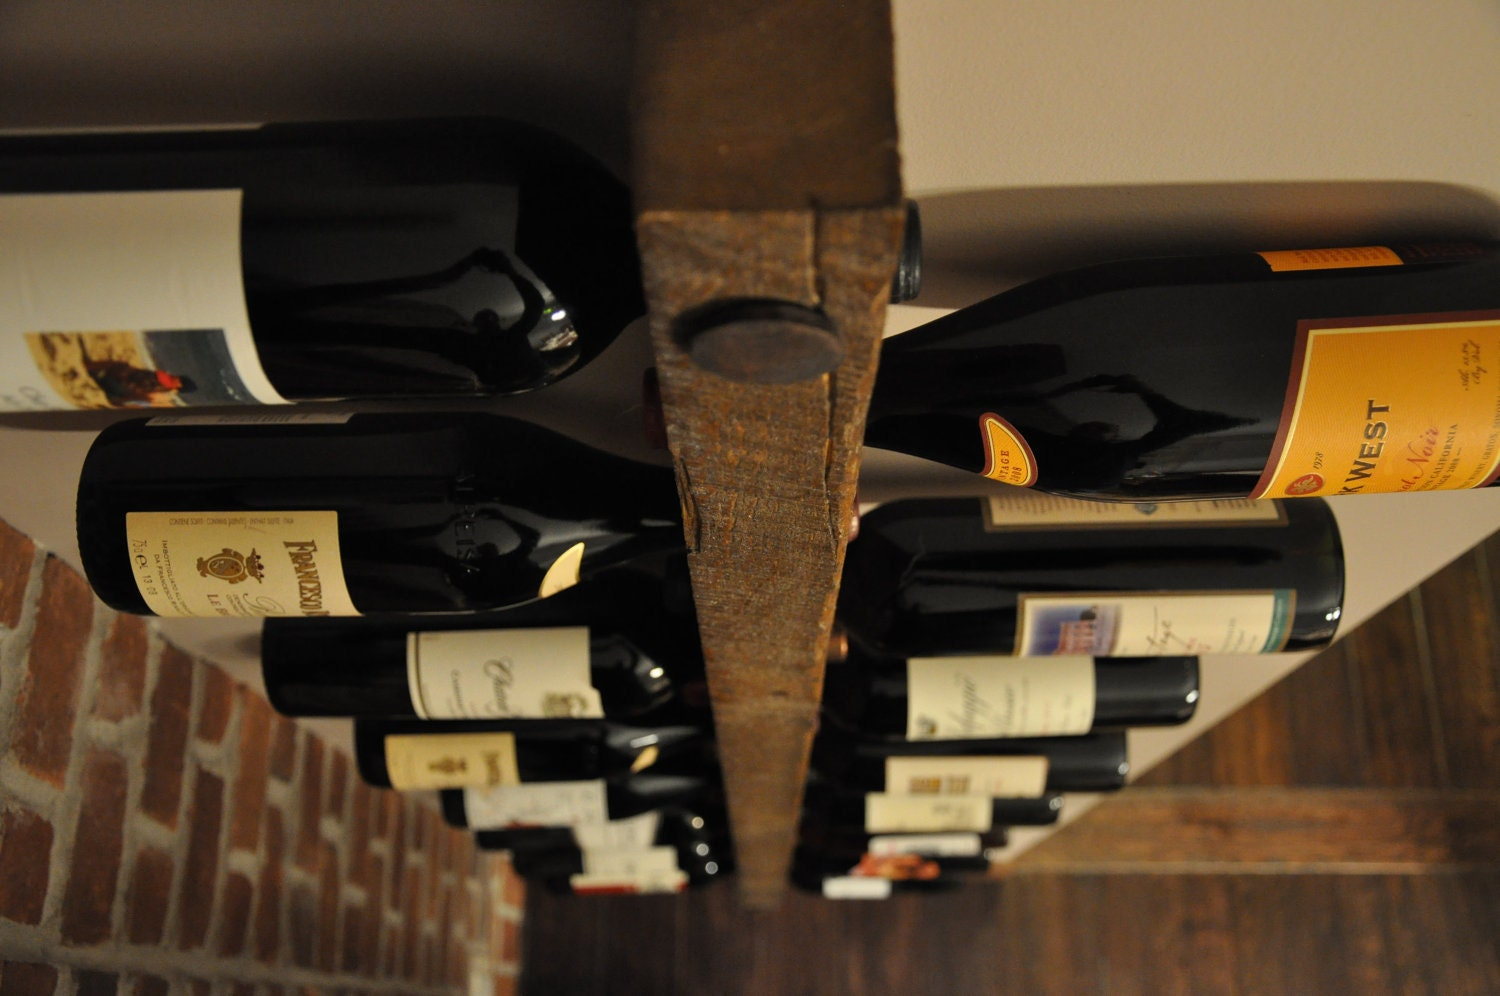 Tuscan wine rack 16 bottle ladder by vetrinadelvino on etsy for Portabottiglie vino fai da te